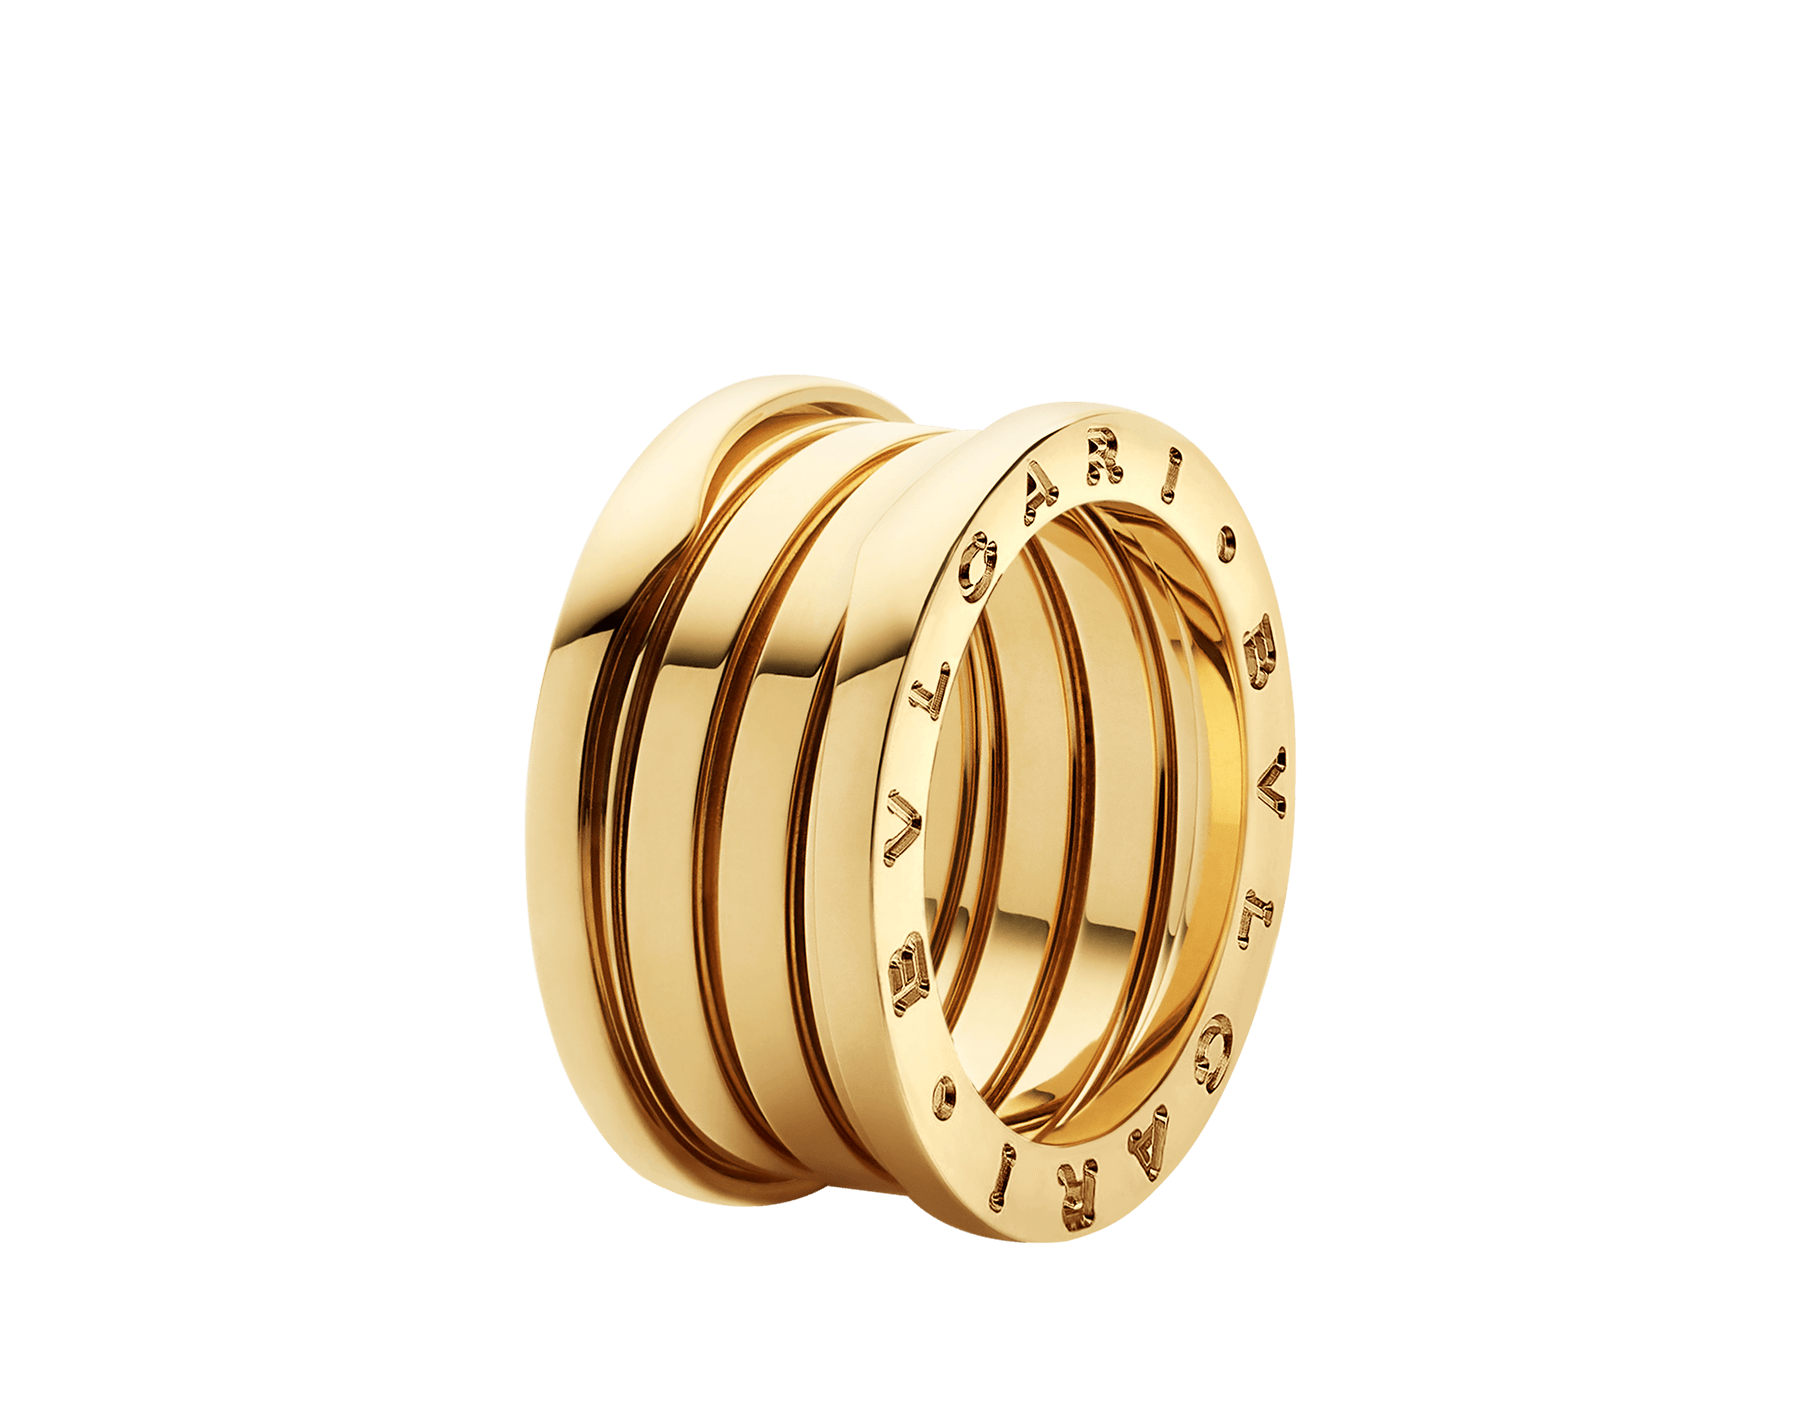 duplicate bulgari ring yellow gold